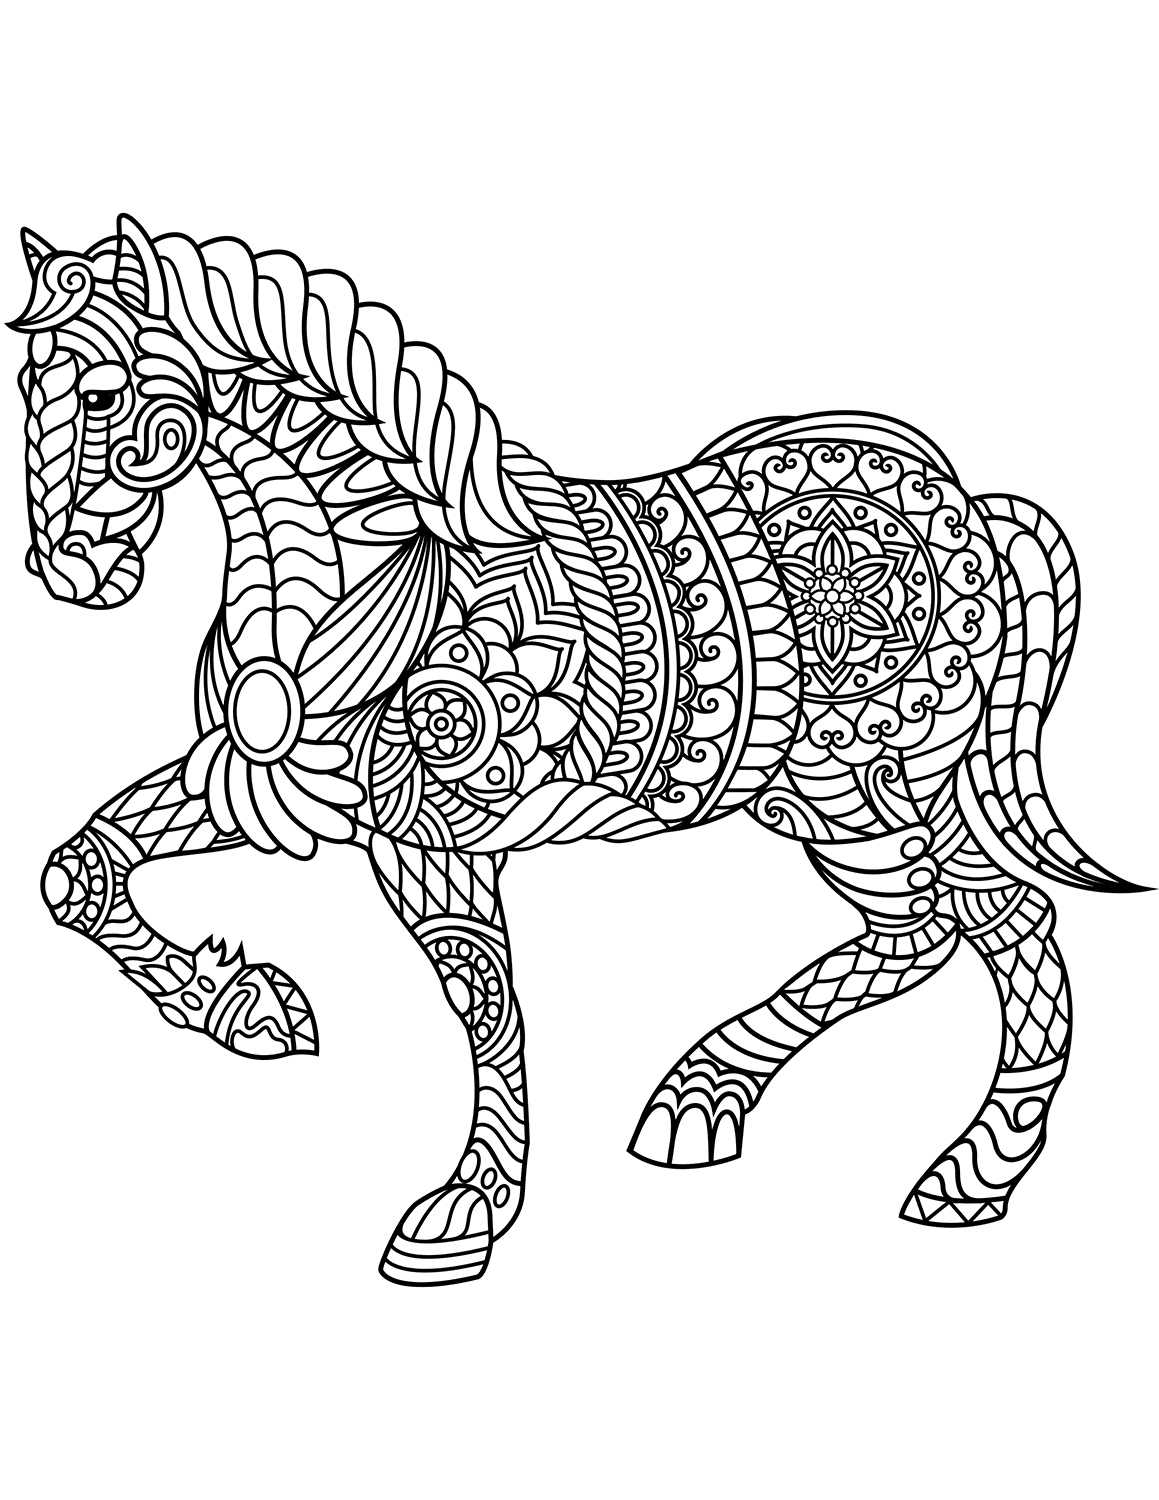 pictures of horses to colour in horse with patterns free to color for children horses of colour pictures in horses to